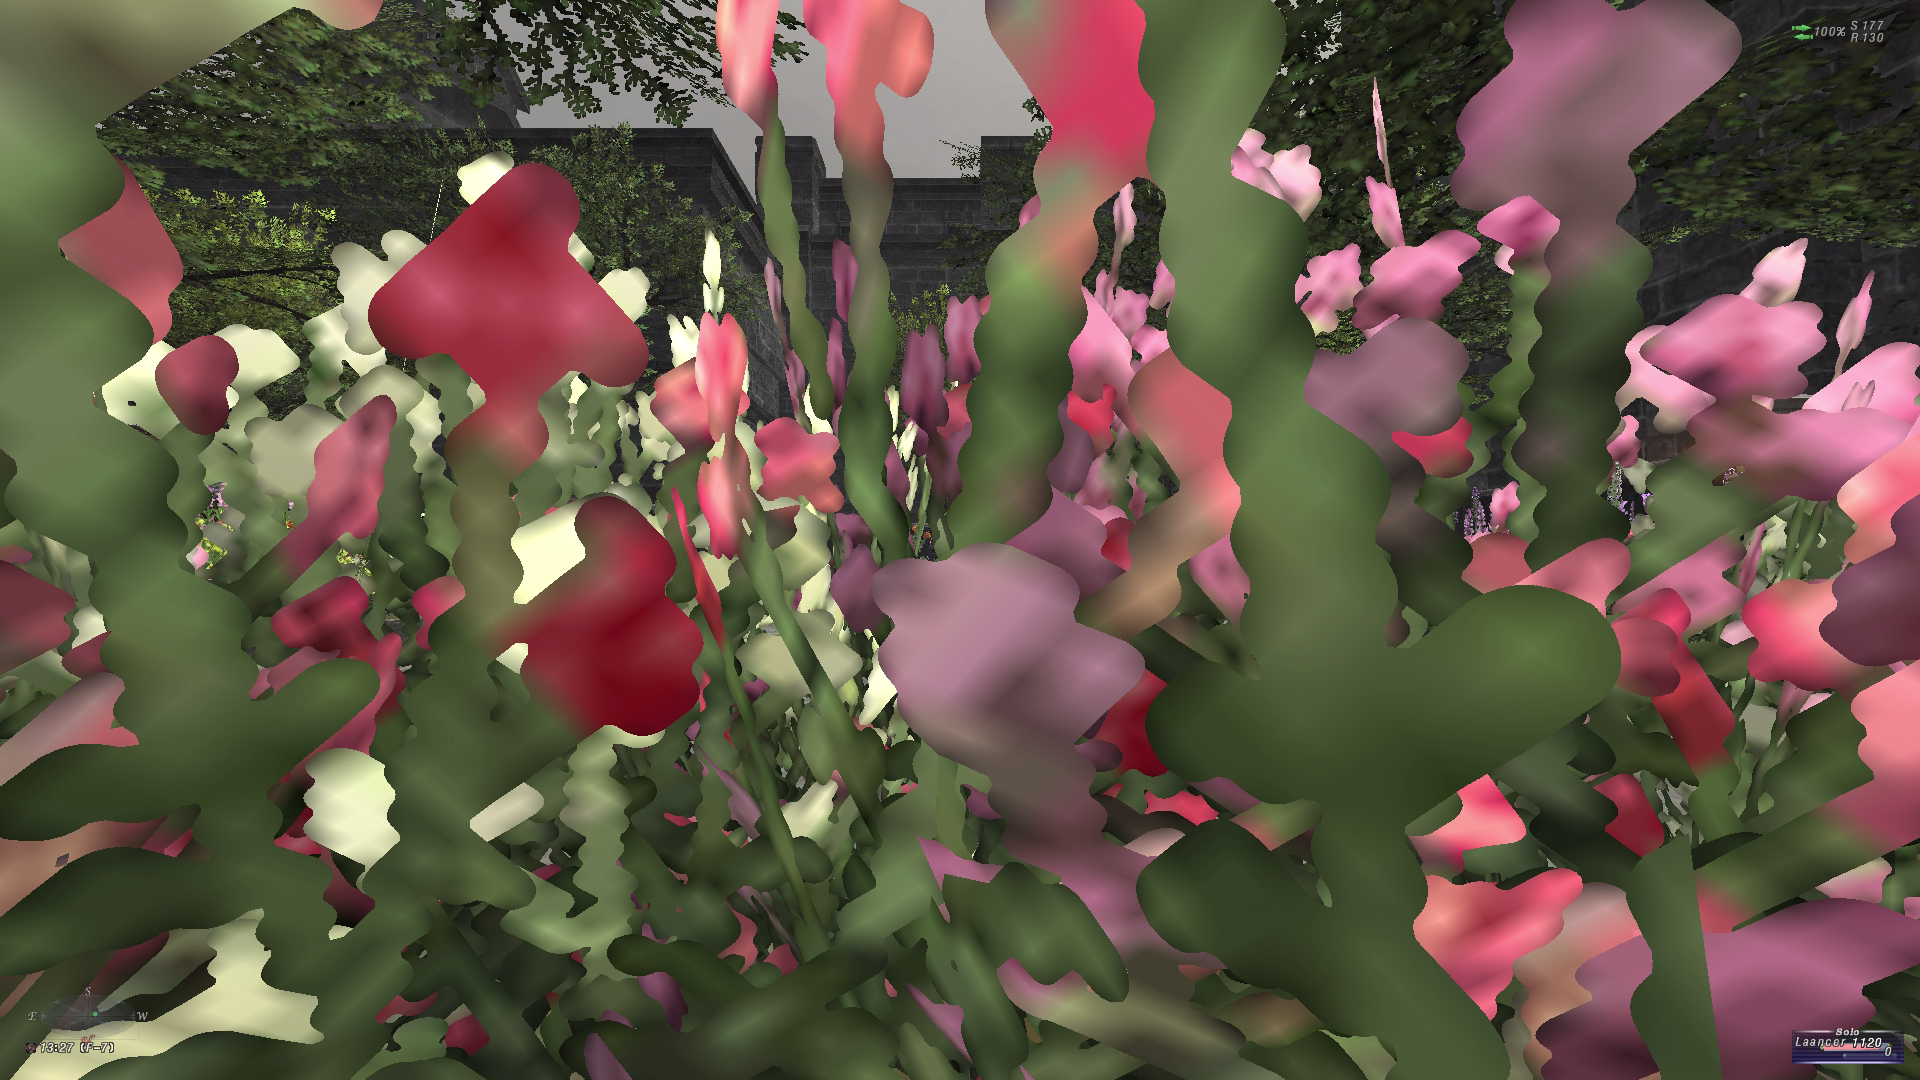 closeup of pixelated garden flowers in videogame.